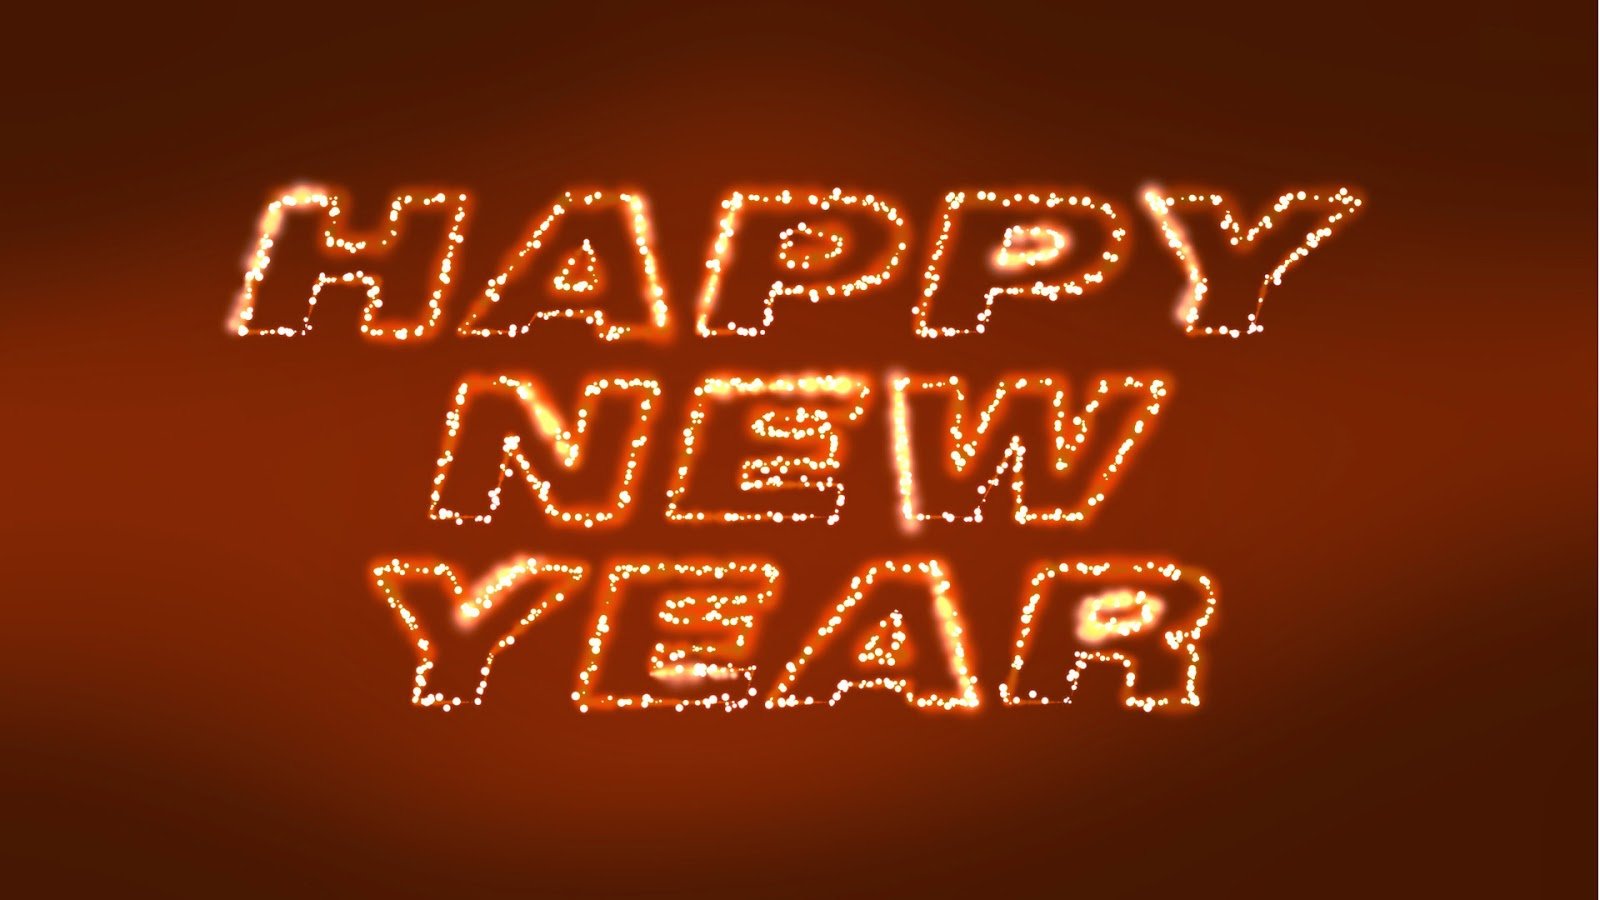 happy new year dekstop background wallpaper